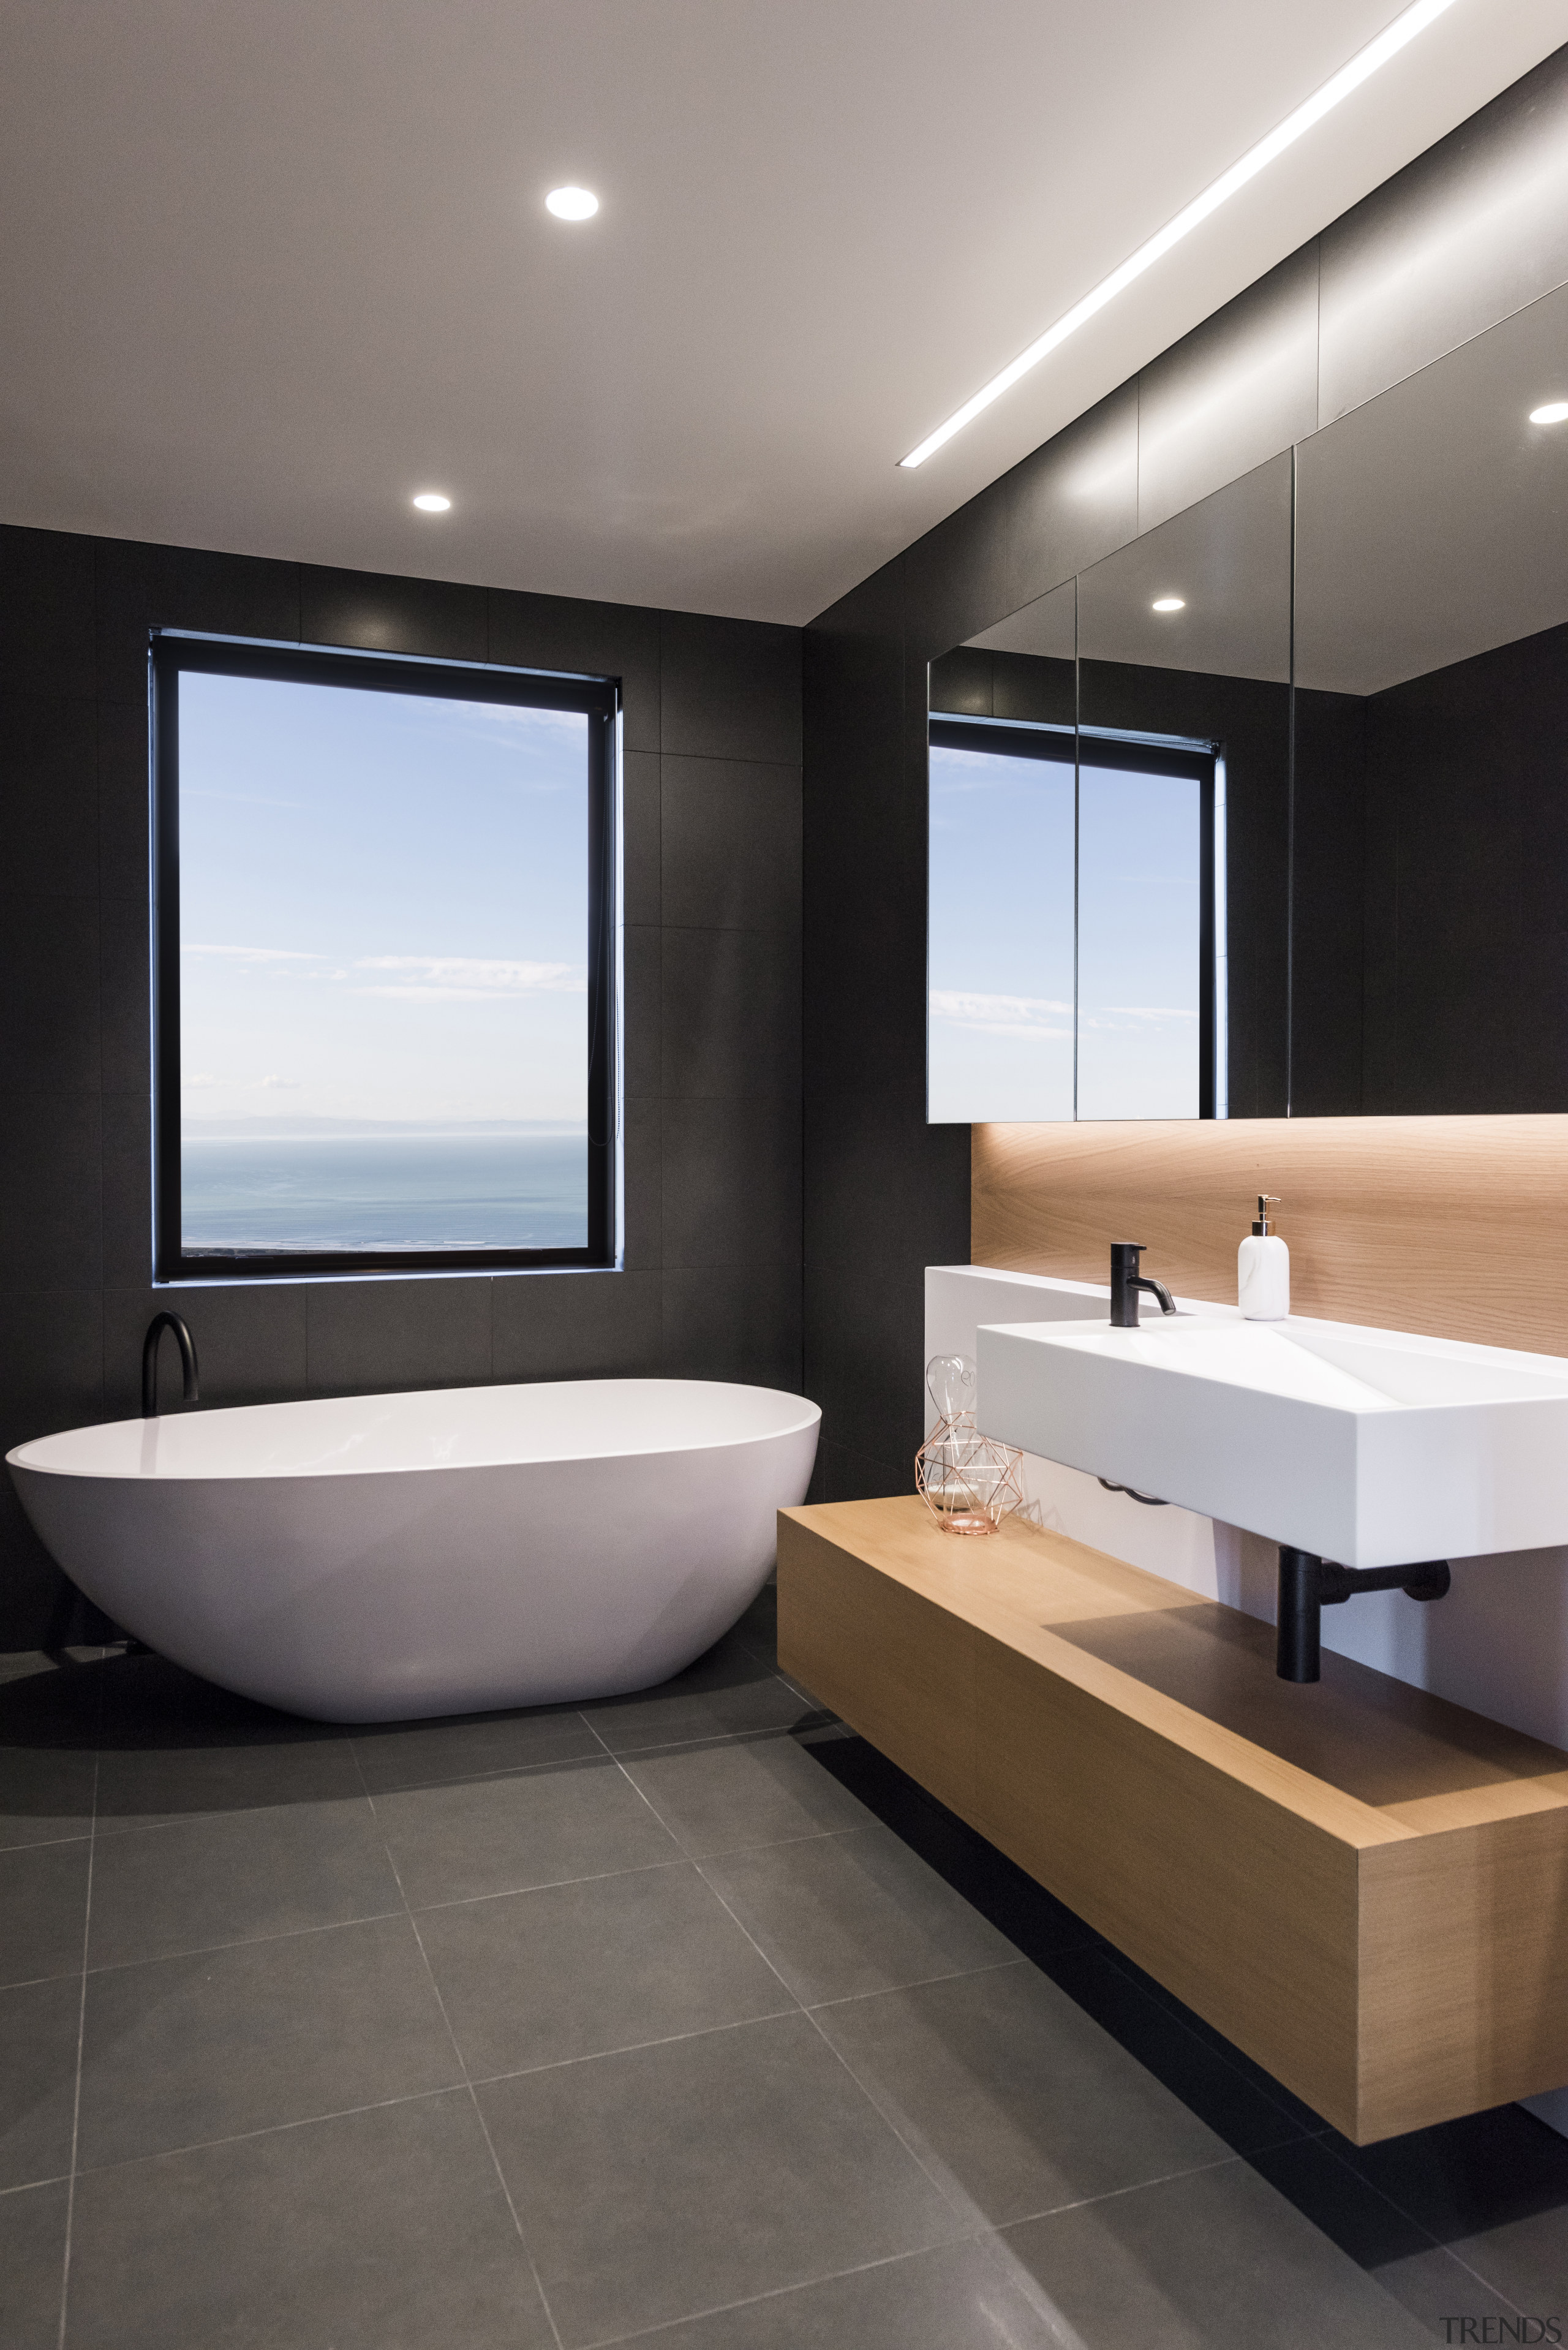 To achieve the effect you want in a bathroom, floor, tiles, interior design, sink, gray, black, freestanding bath, timber vanity top, Davinia Sutton